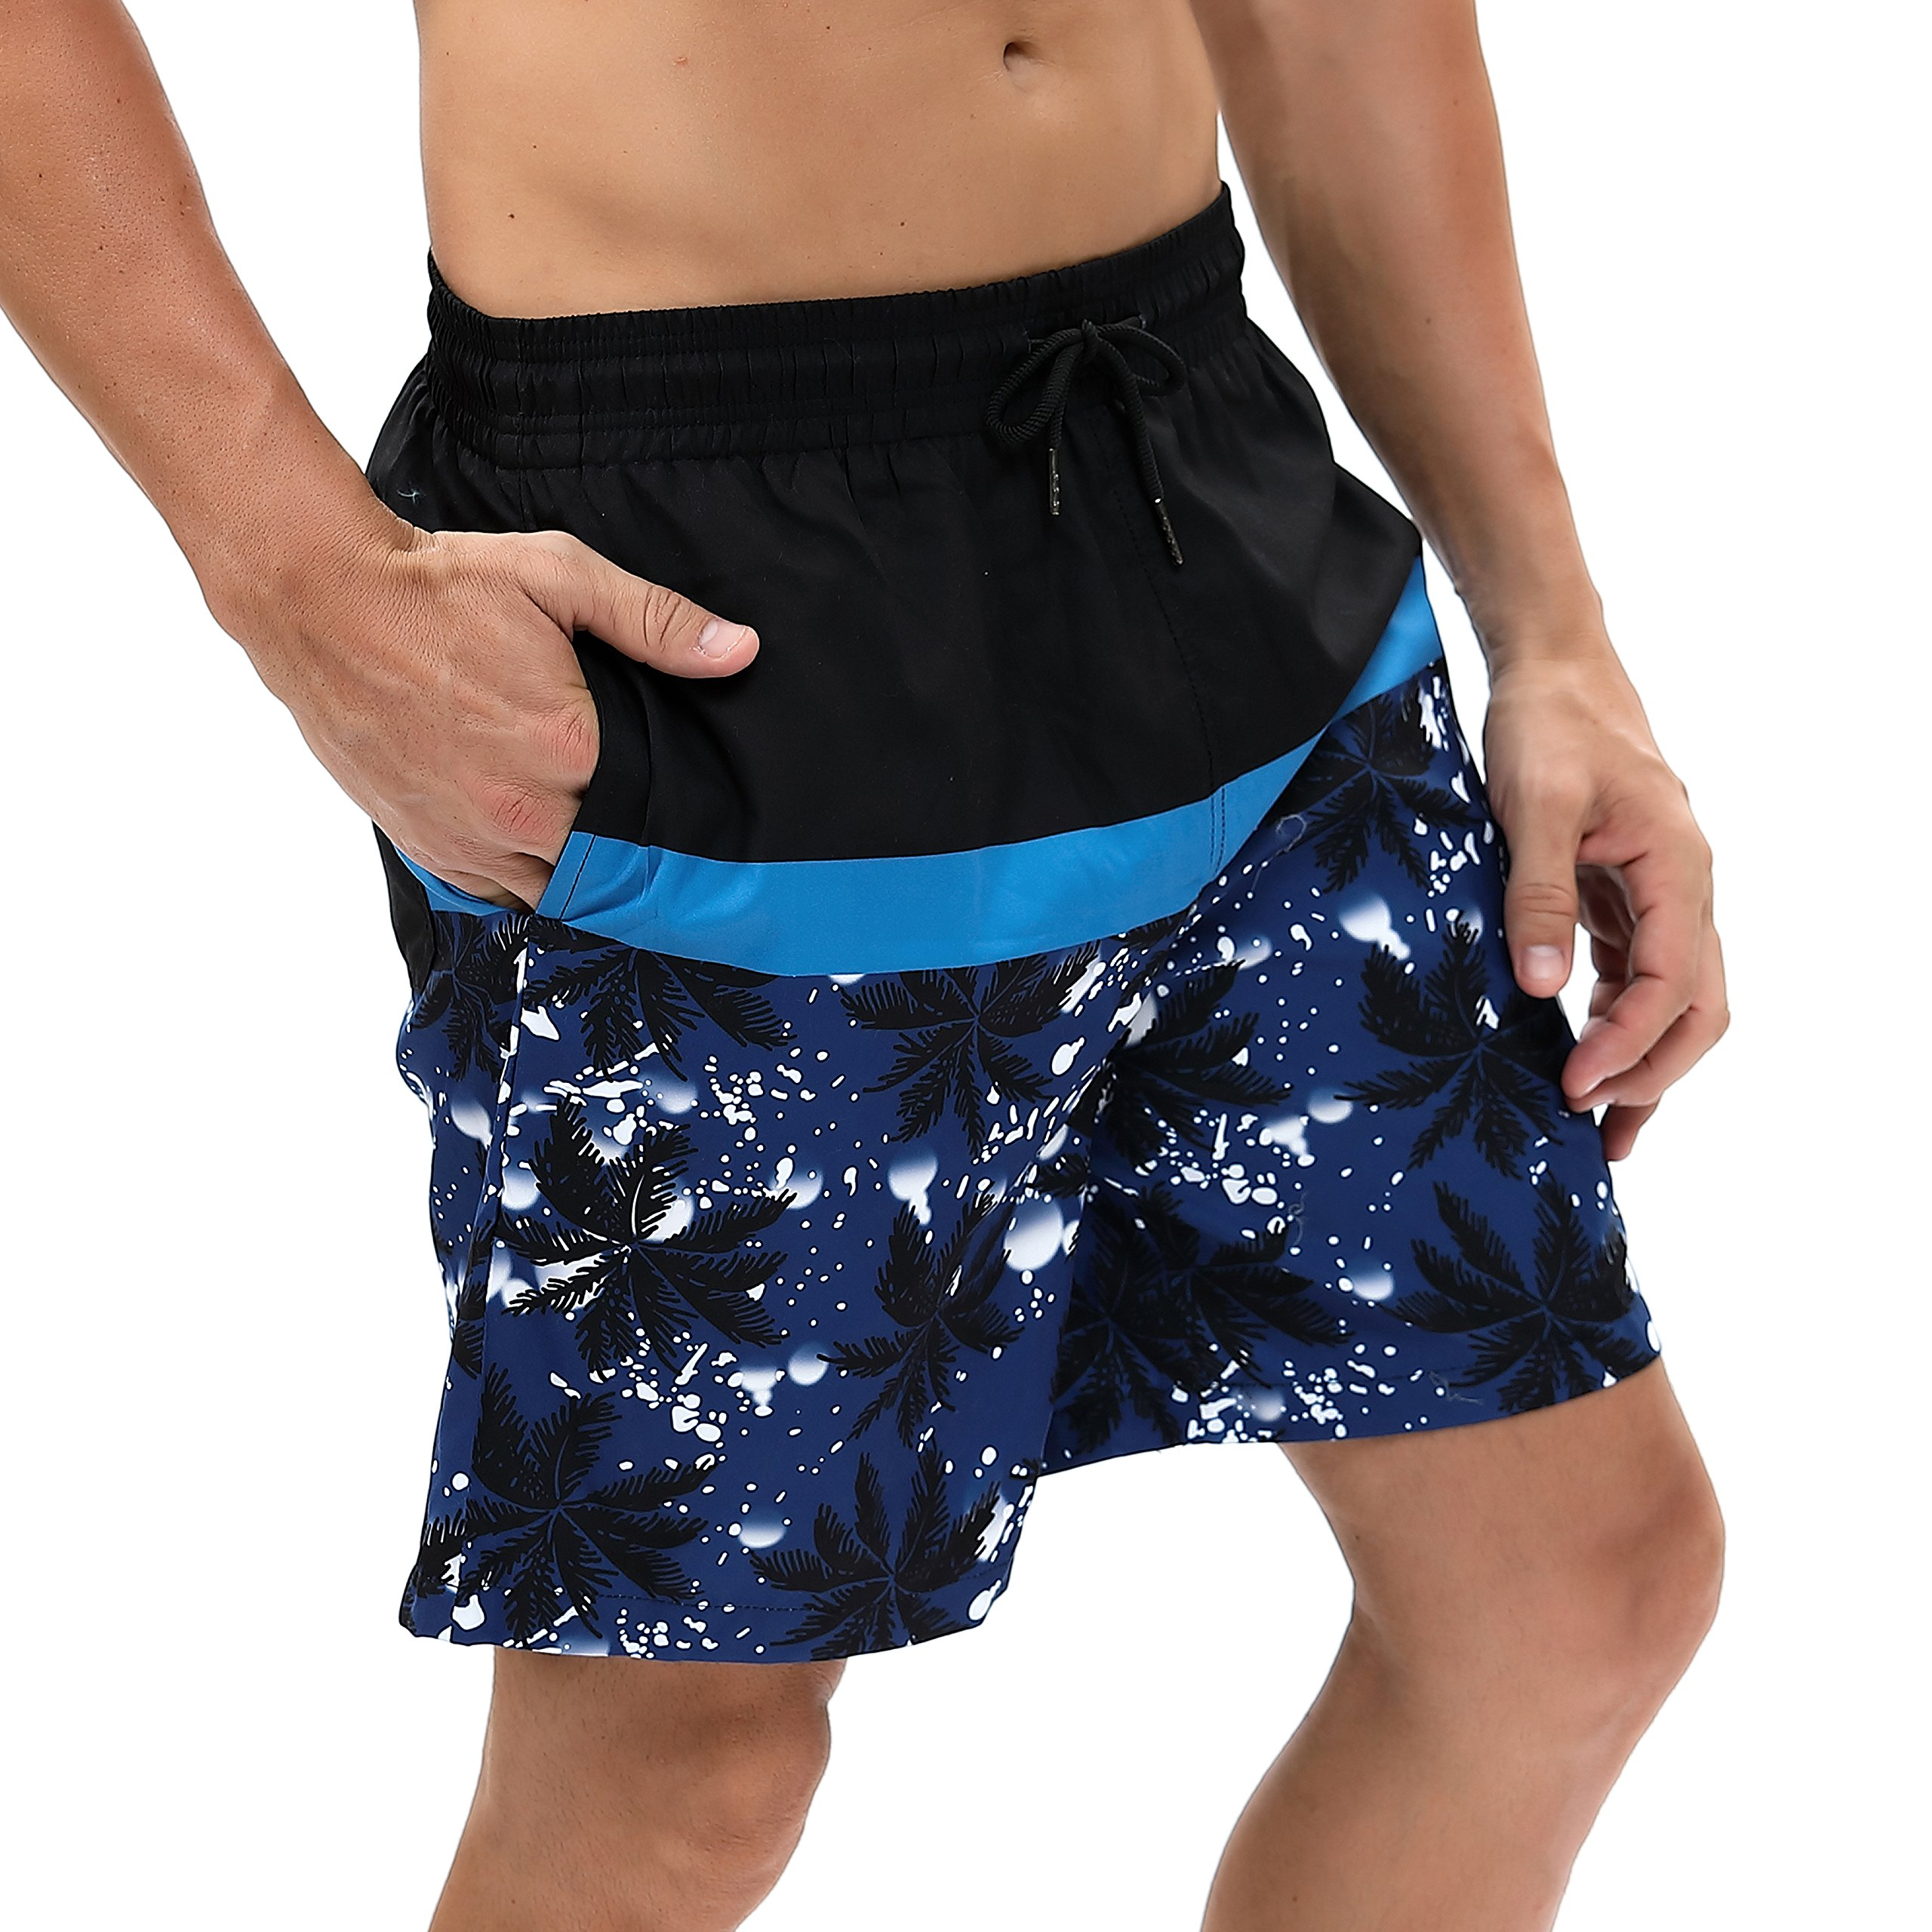 Funycell Men's Shorts Swim Trunks with Mesh Liner Black/Blue US S